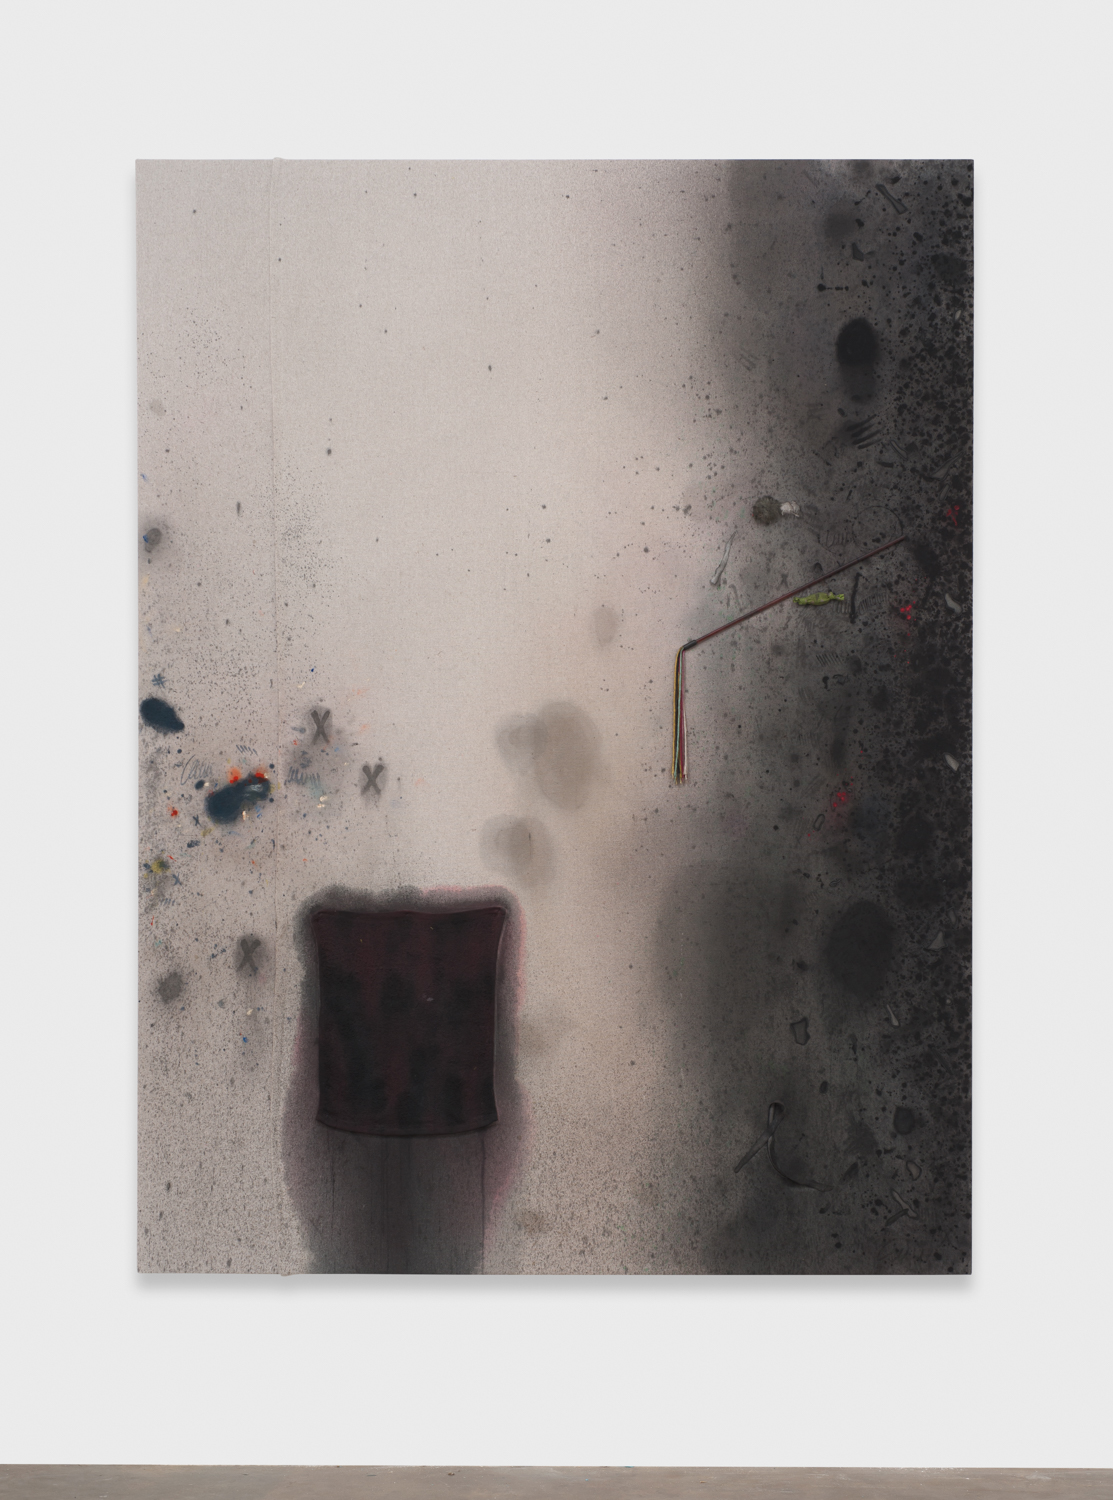 Amanda Ross-Ho  Untitled Dropcloth Painting, (BLACK RAG AND TASSEL)  2014 Canvas dropcloth, acrylic paint, latex paint, graphite, fabric dye, black rag, tassel cat toy, grey fur mouse (feather tail), green catnip candy, White Goddess negatives 84h x 63w in ARH093